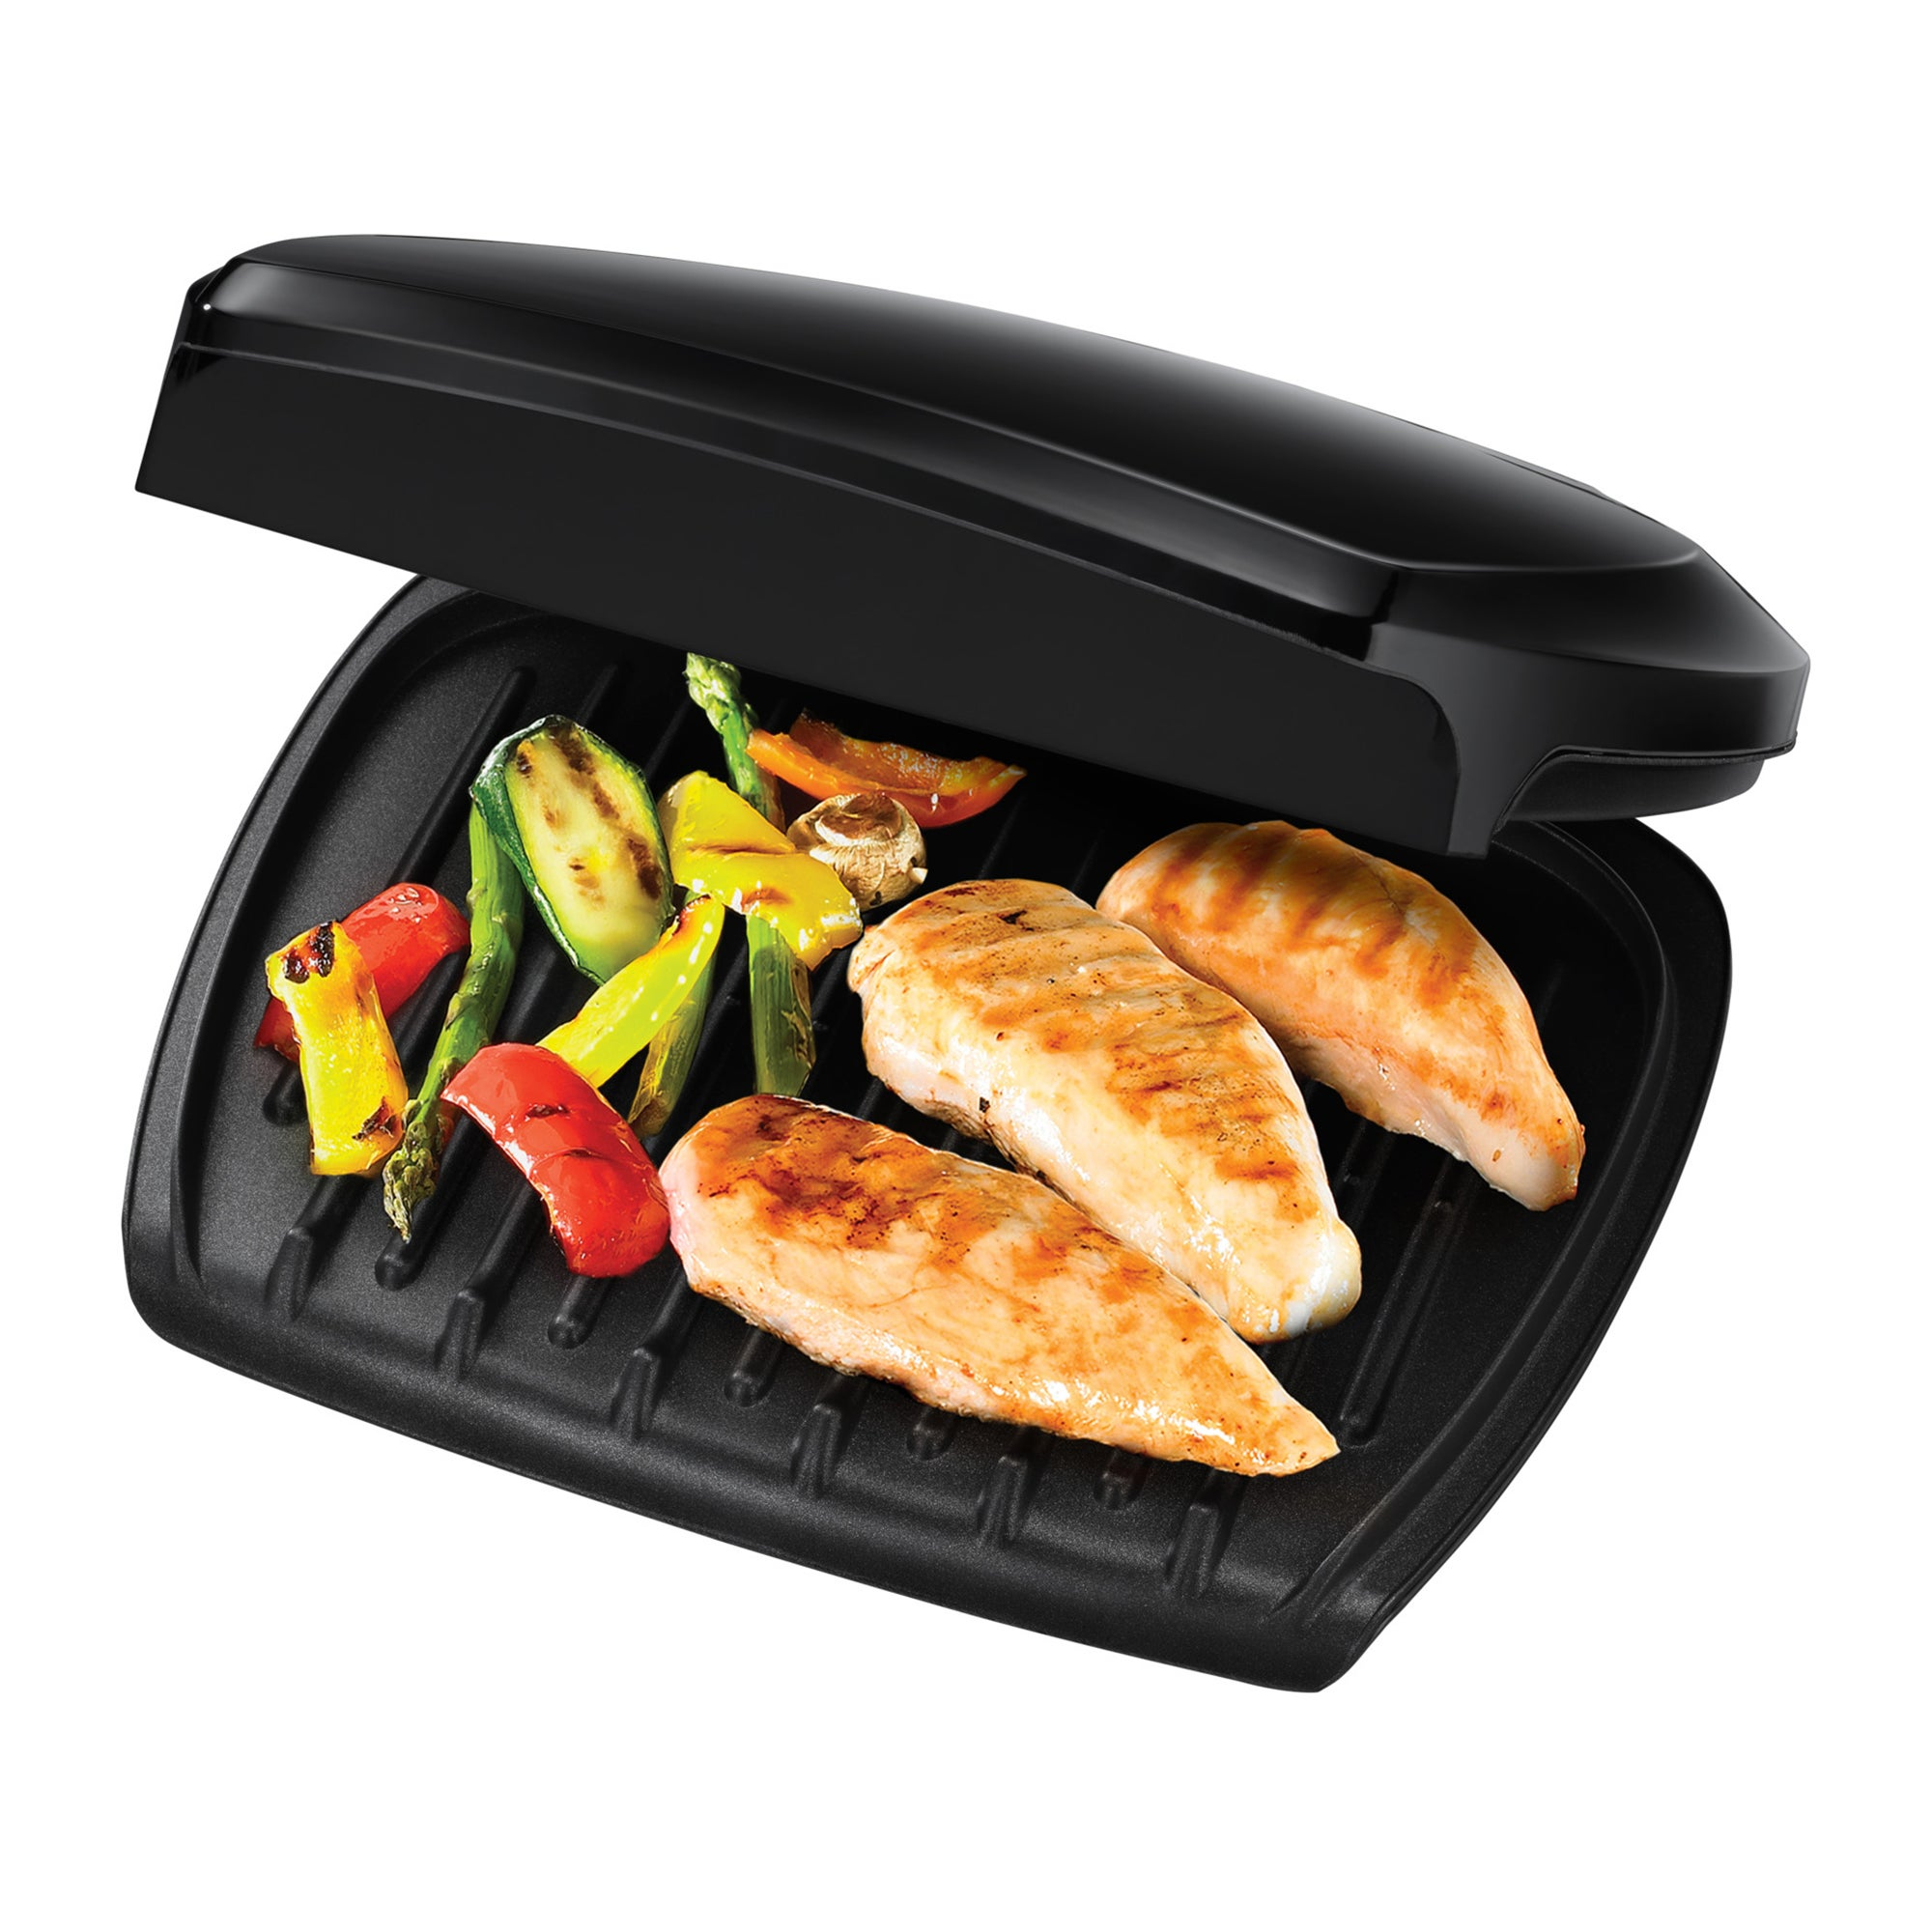 George Foreman George Foreman Family 5-Portion510 sq cm plate Grill 23420 - Black